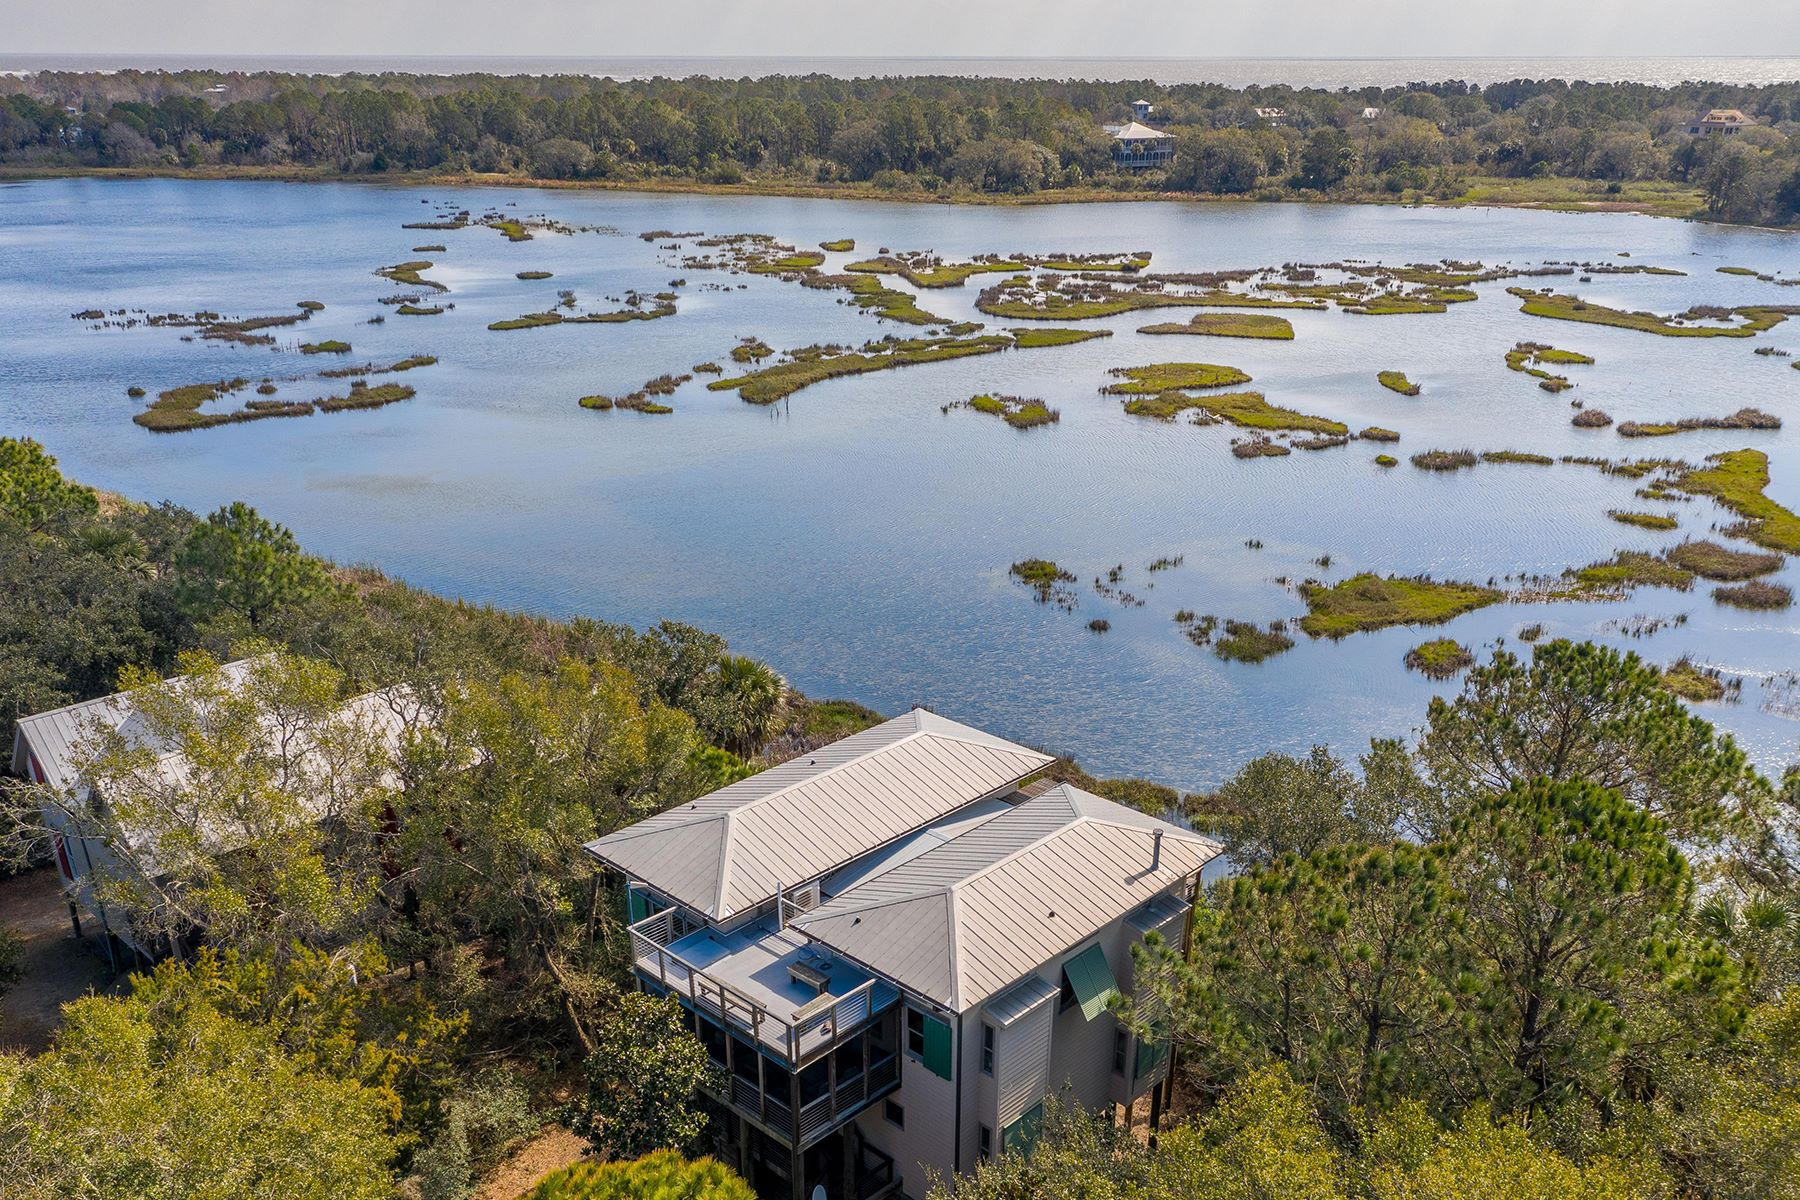 Single Family Homes for Sale at 251 Old House Lane Dewees Island, South Carolina 29451 United States